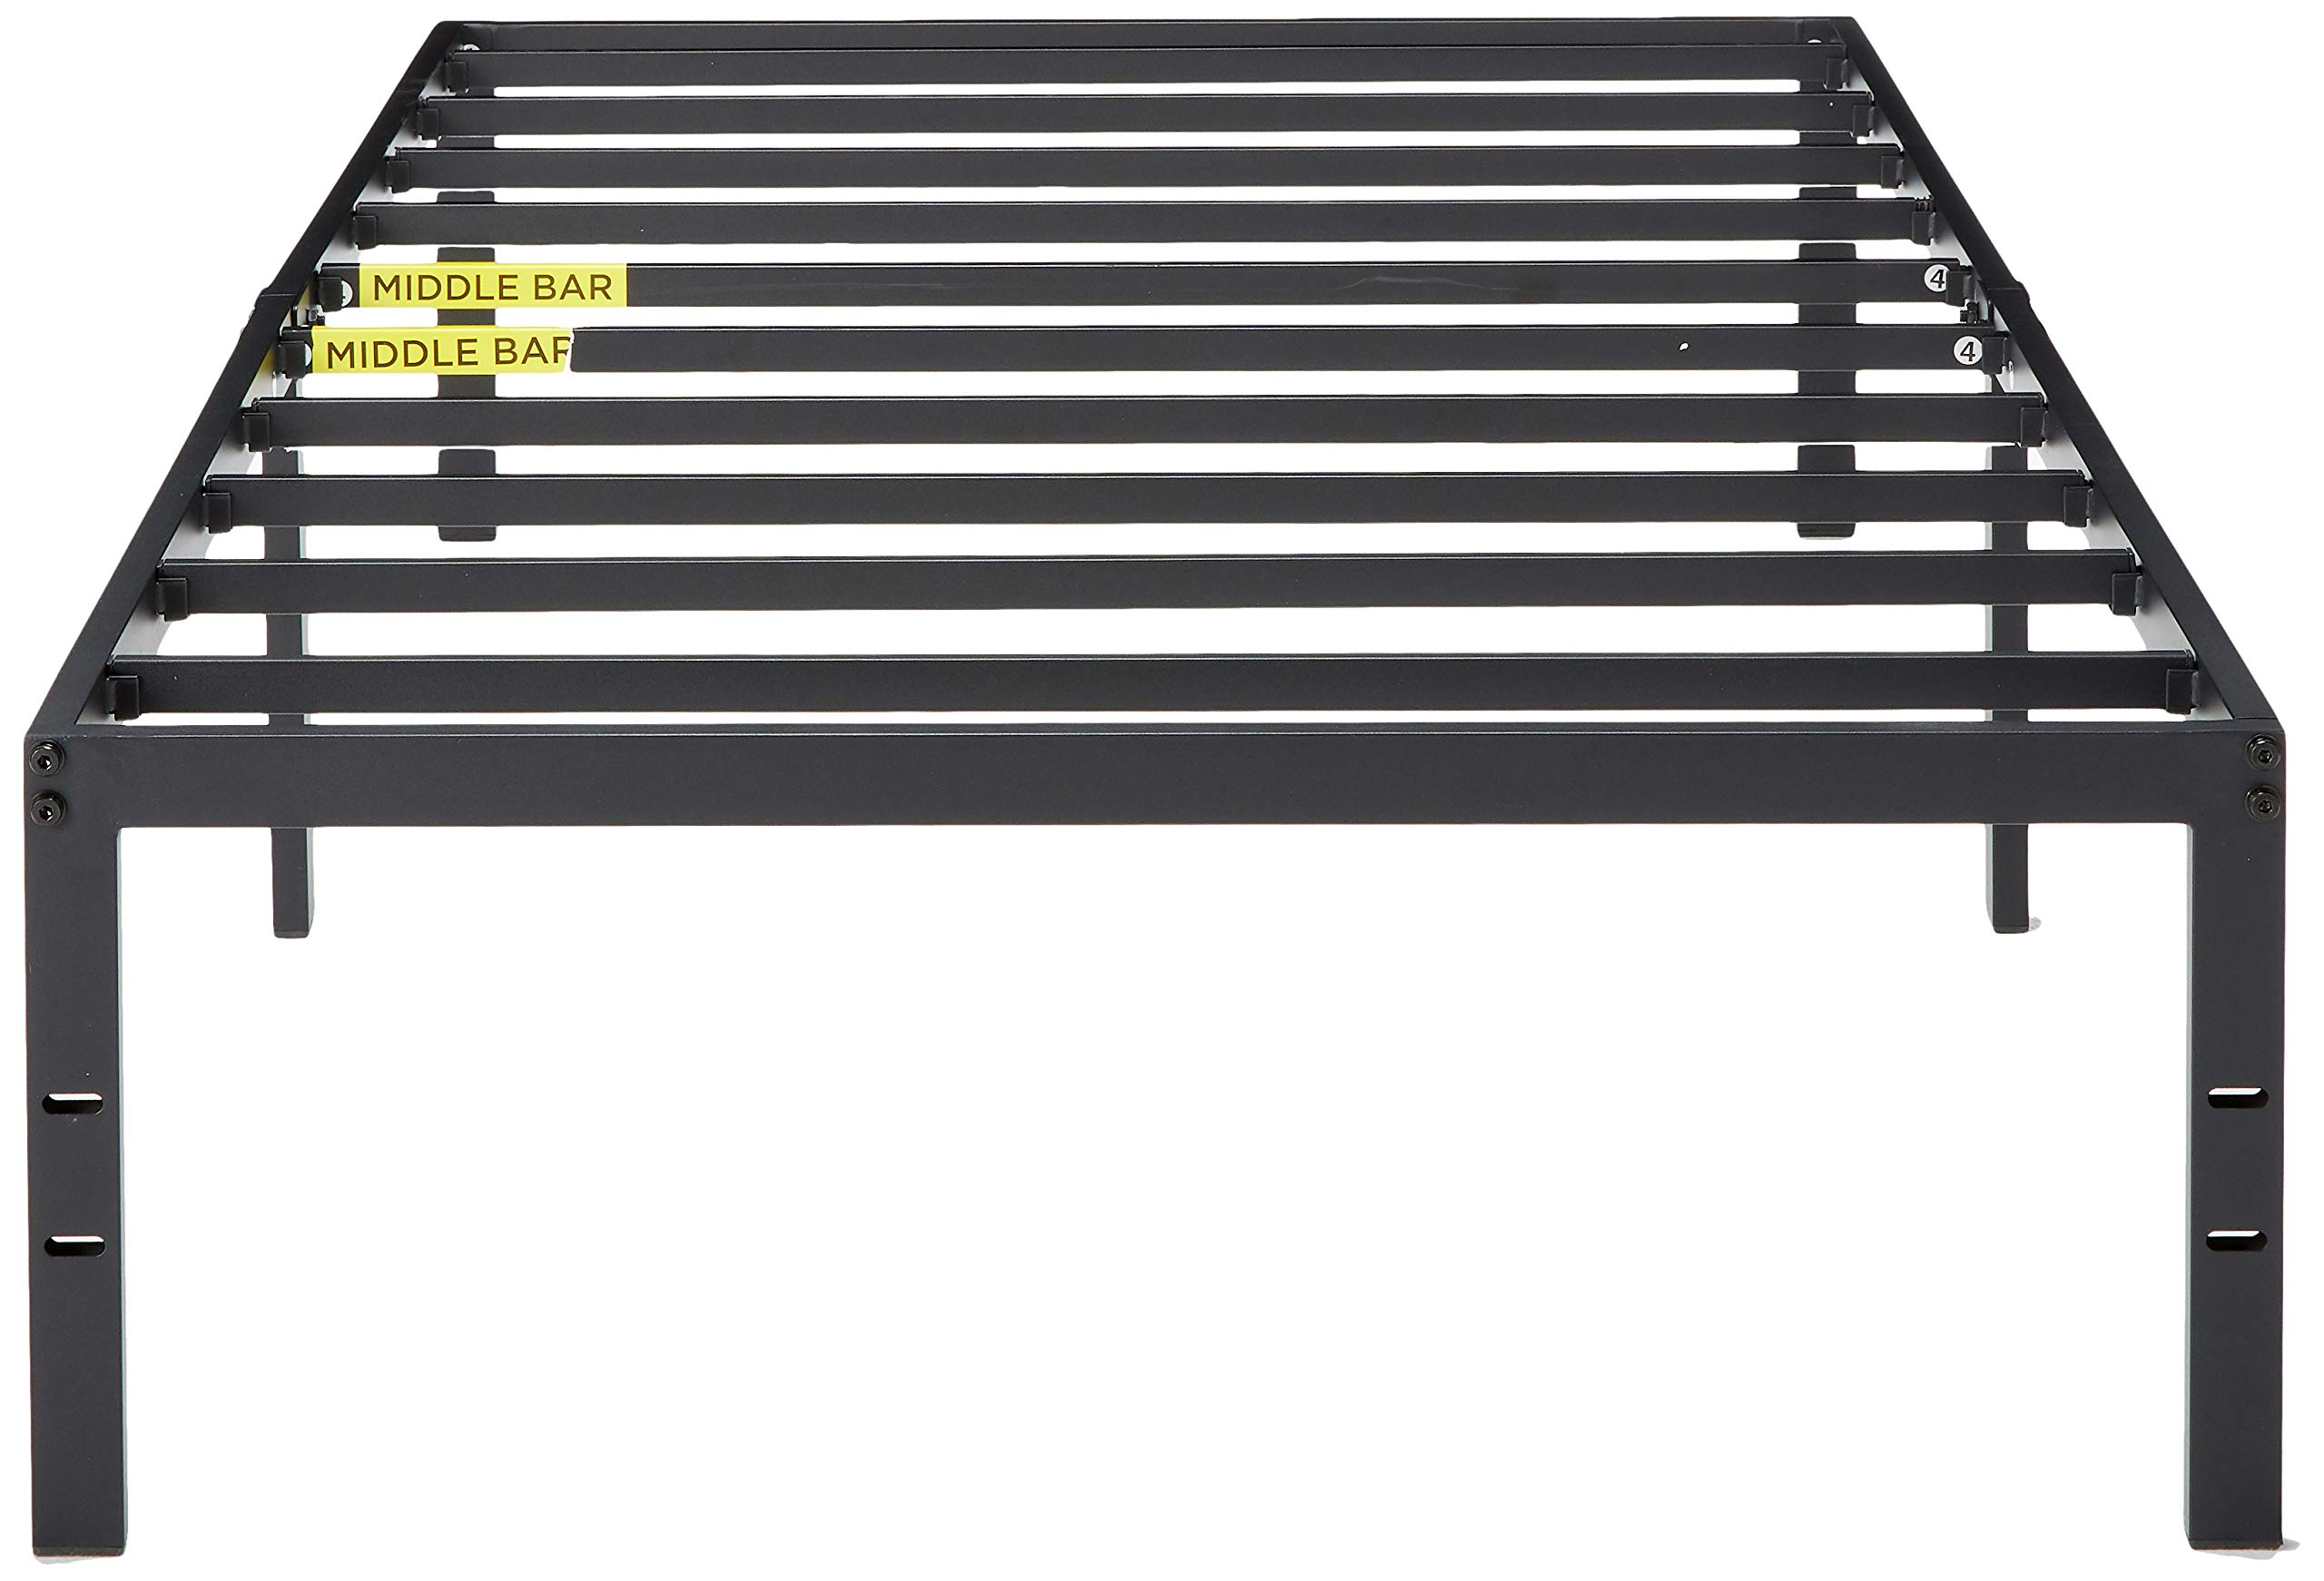 Zinus Van 16 Inch Metal Platform Bed Frame with Steel Slat Support / Mattress Foundation, Twin